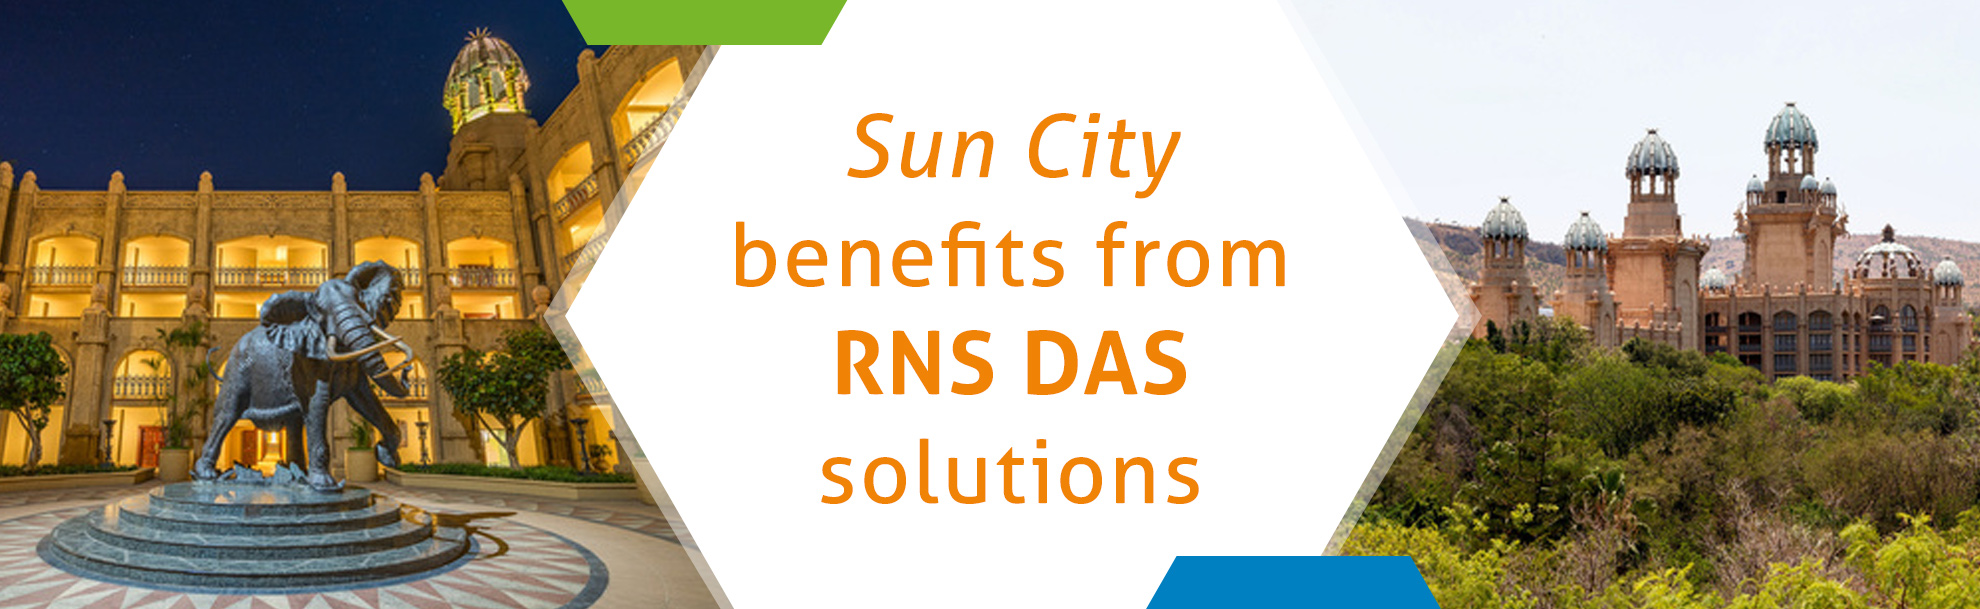 Sun City benefits from RNS DAS solutions